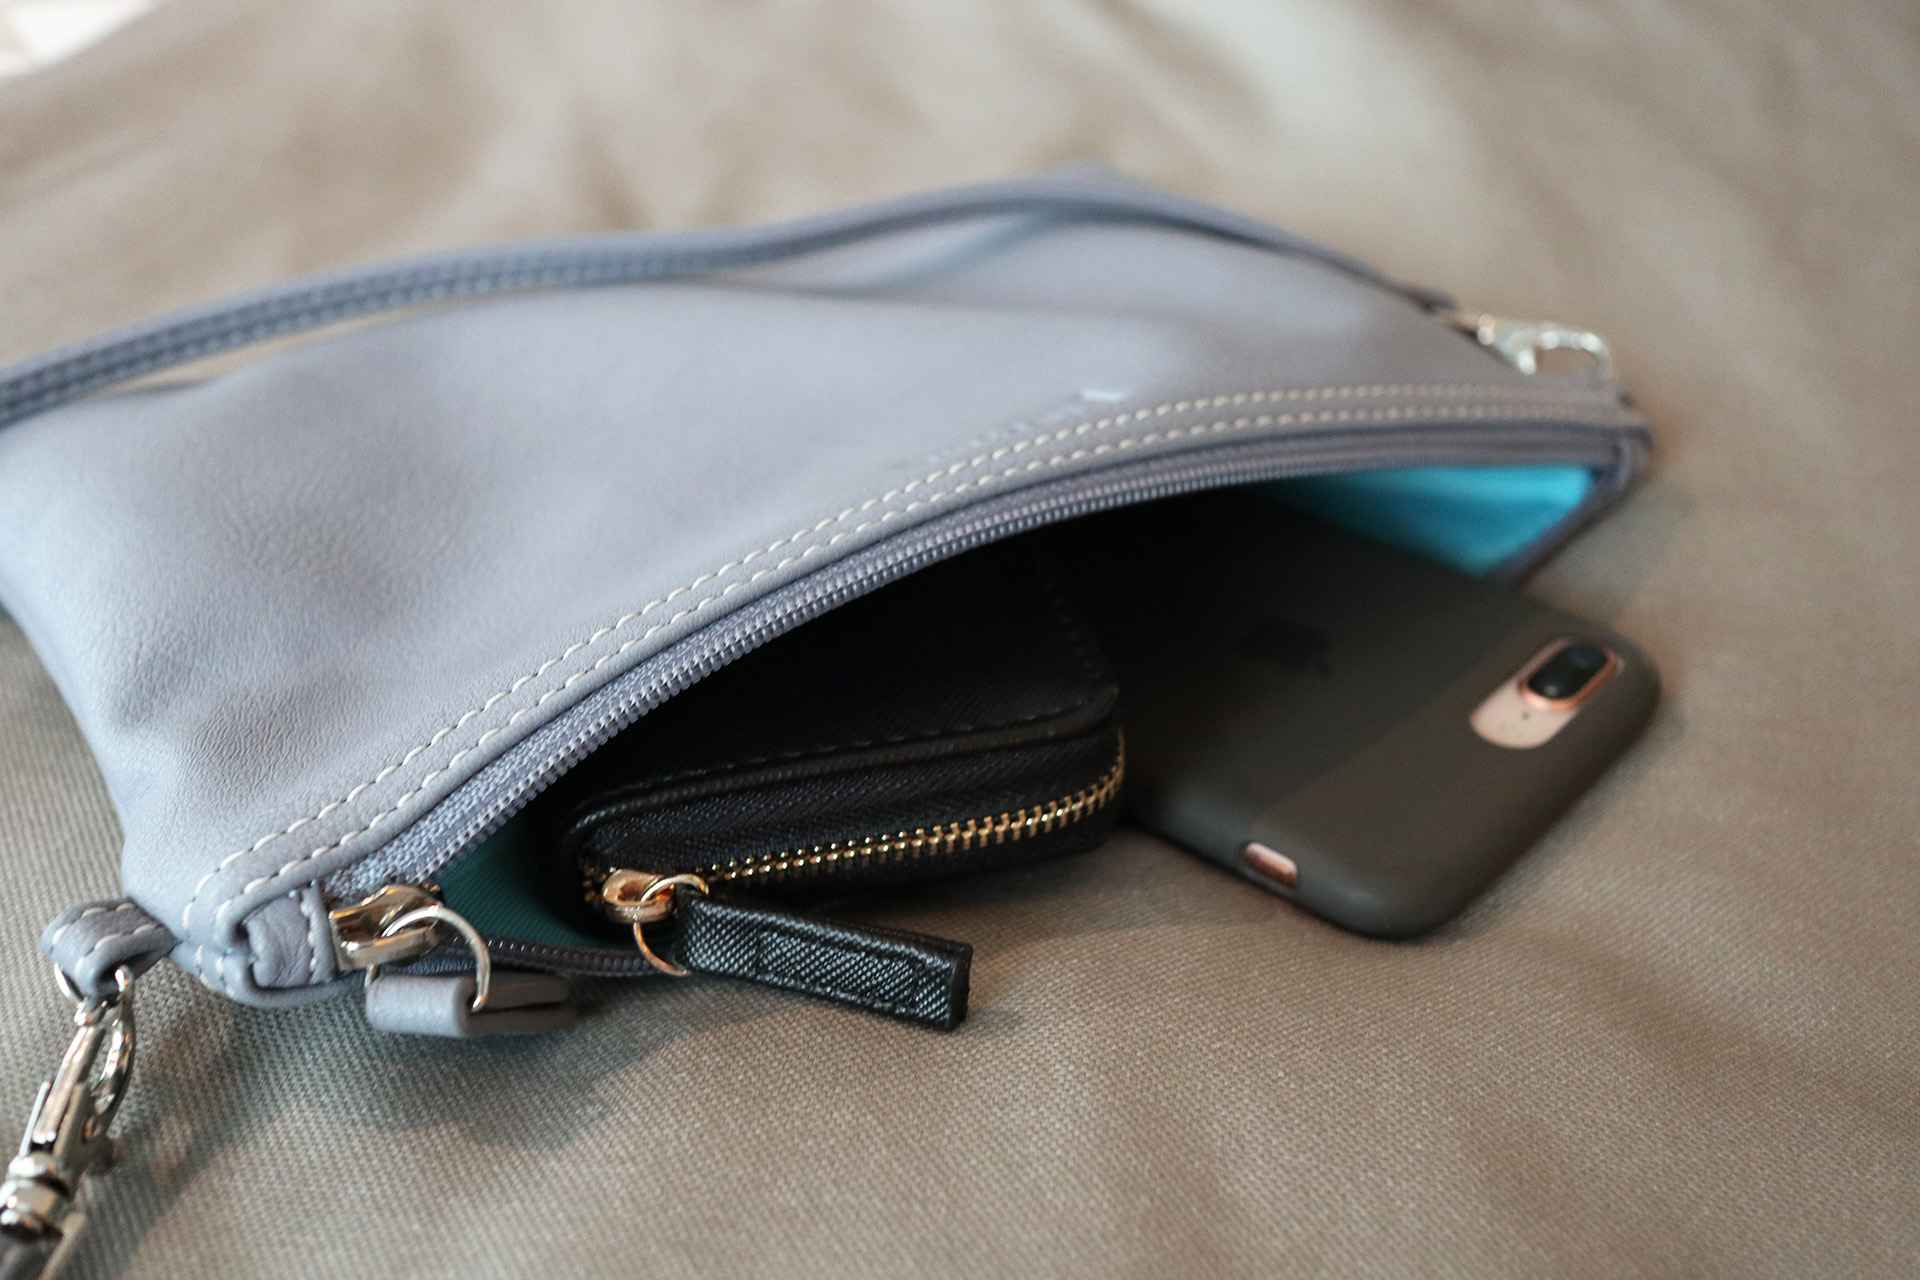 The Mia Tui Jennie also comes with this matching clutch bag, with a cross-body strap